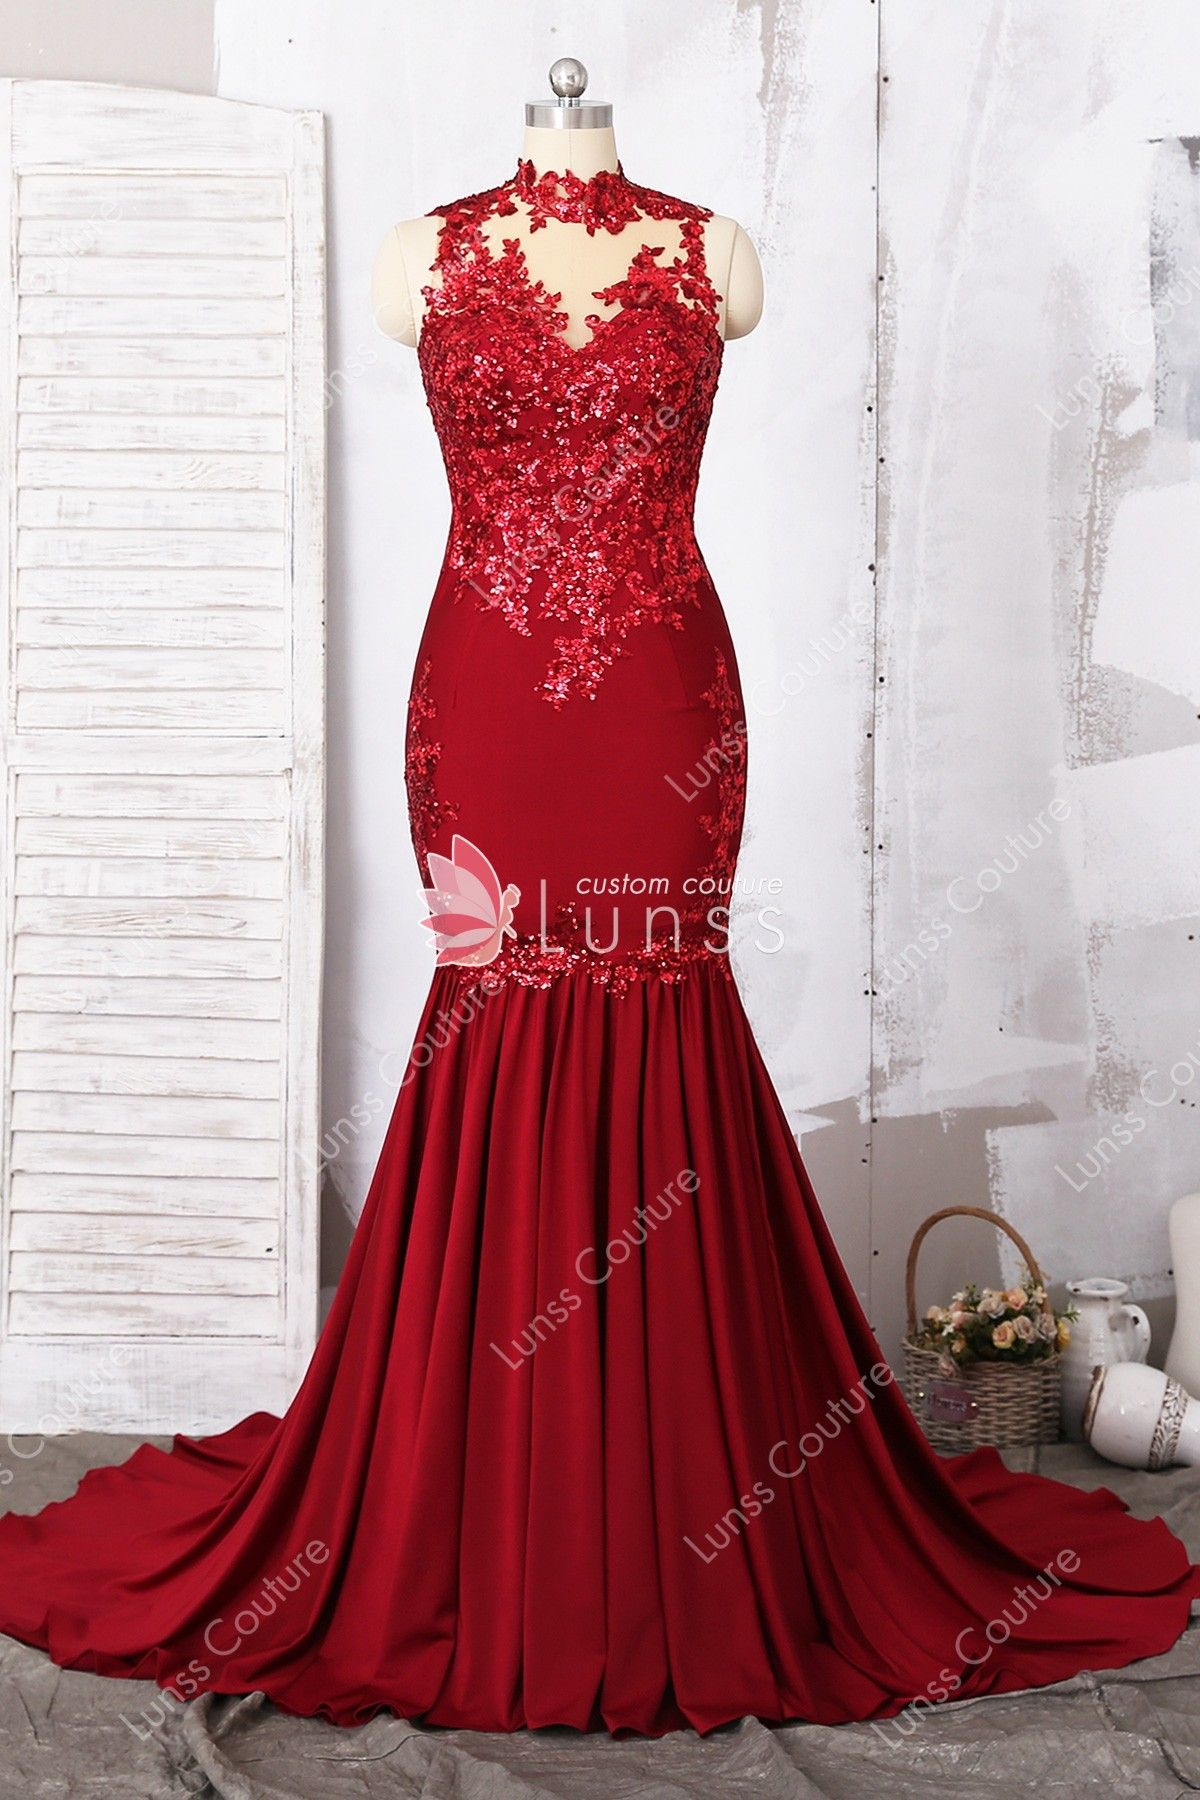 aa1a8802e97 Dark Red Sleeveless Illusion Neck Sequin Appliqued Customized Jersey  Mermaid Prom Dress